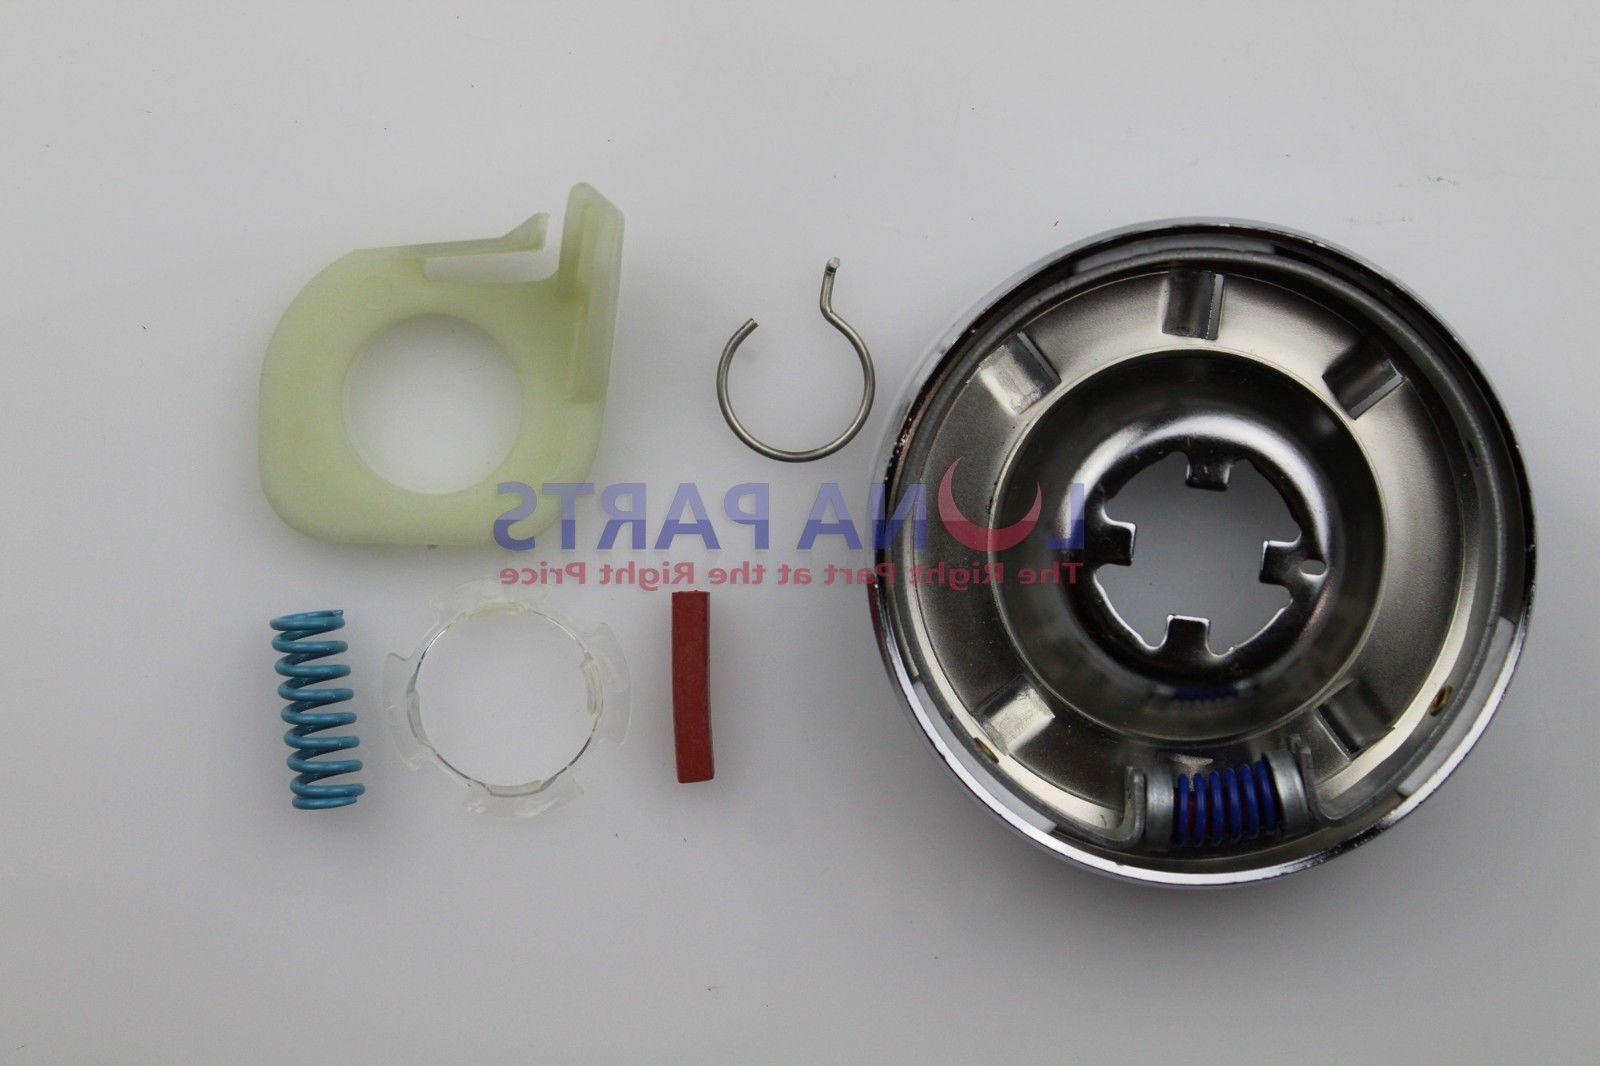 285785 Washer Clutch Kenmore